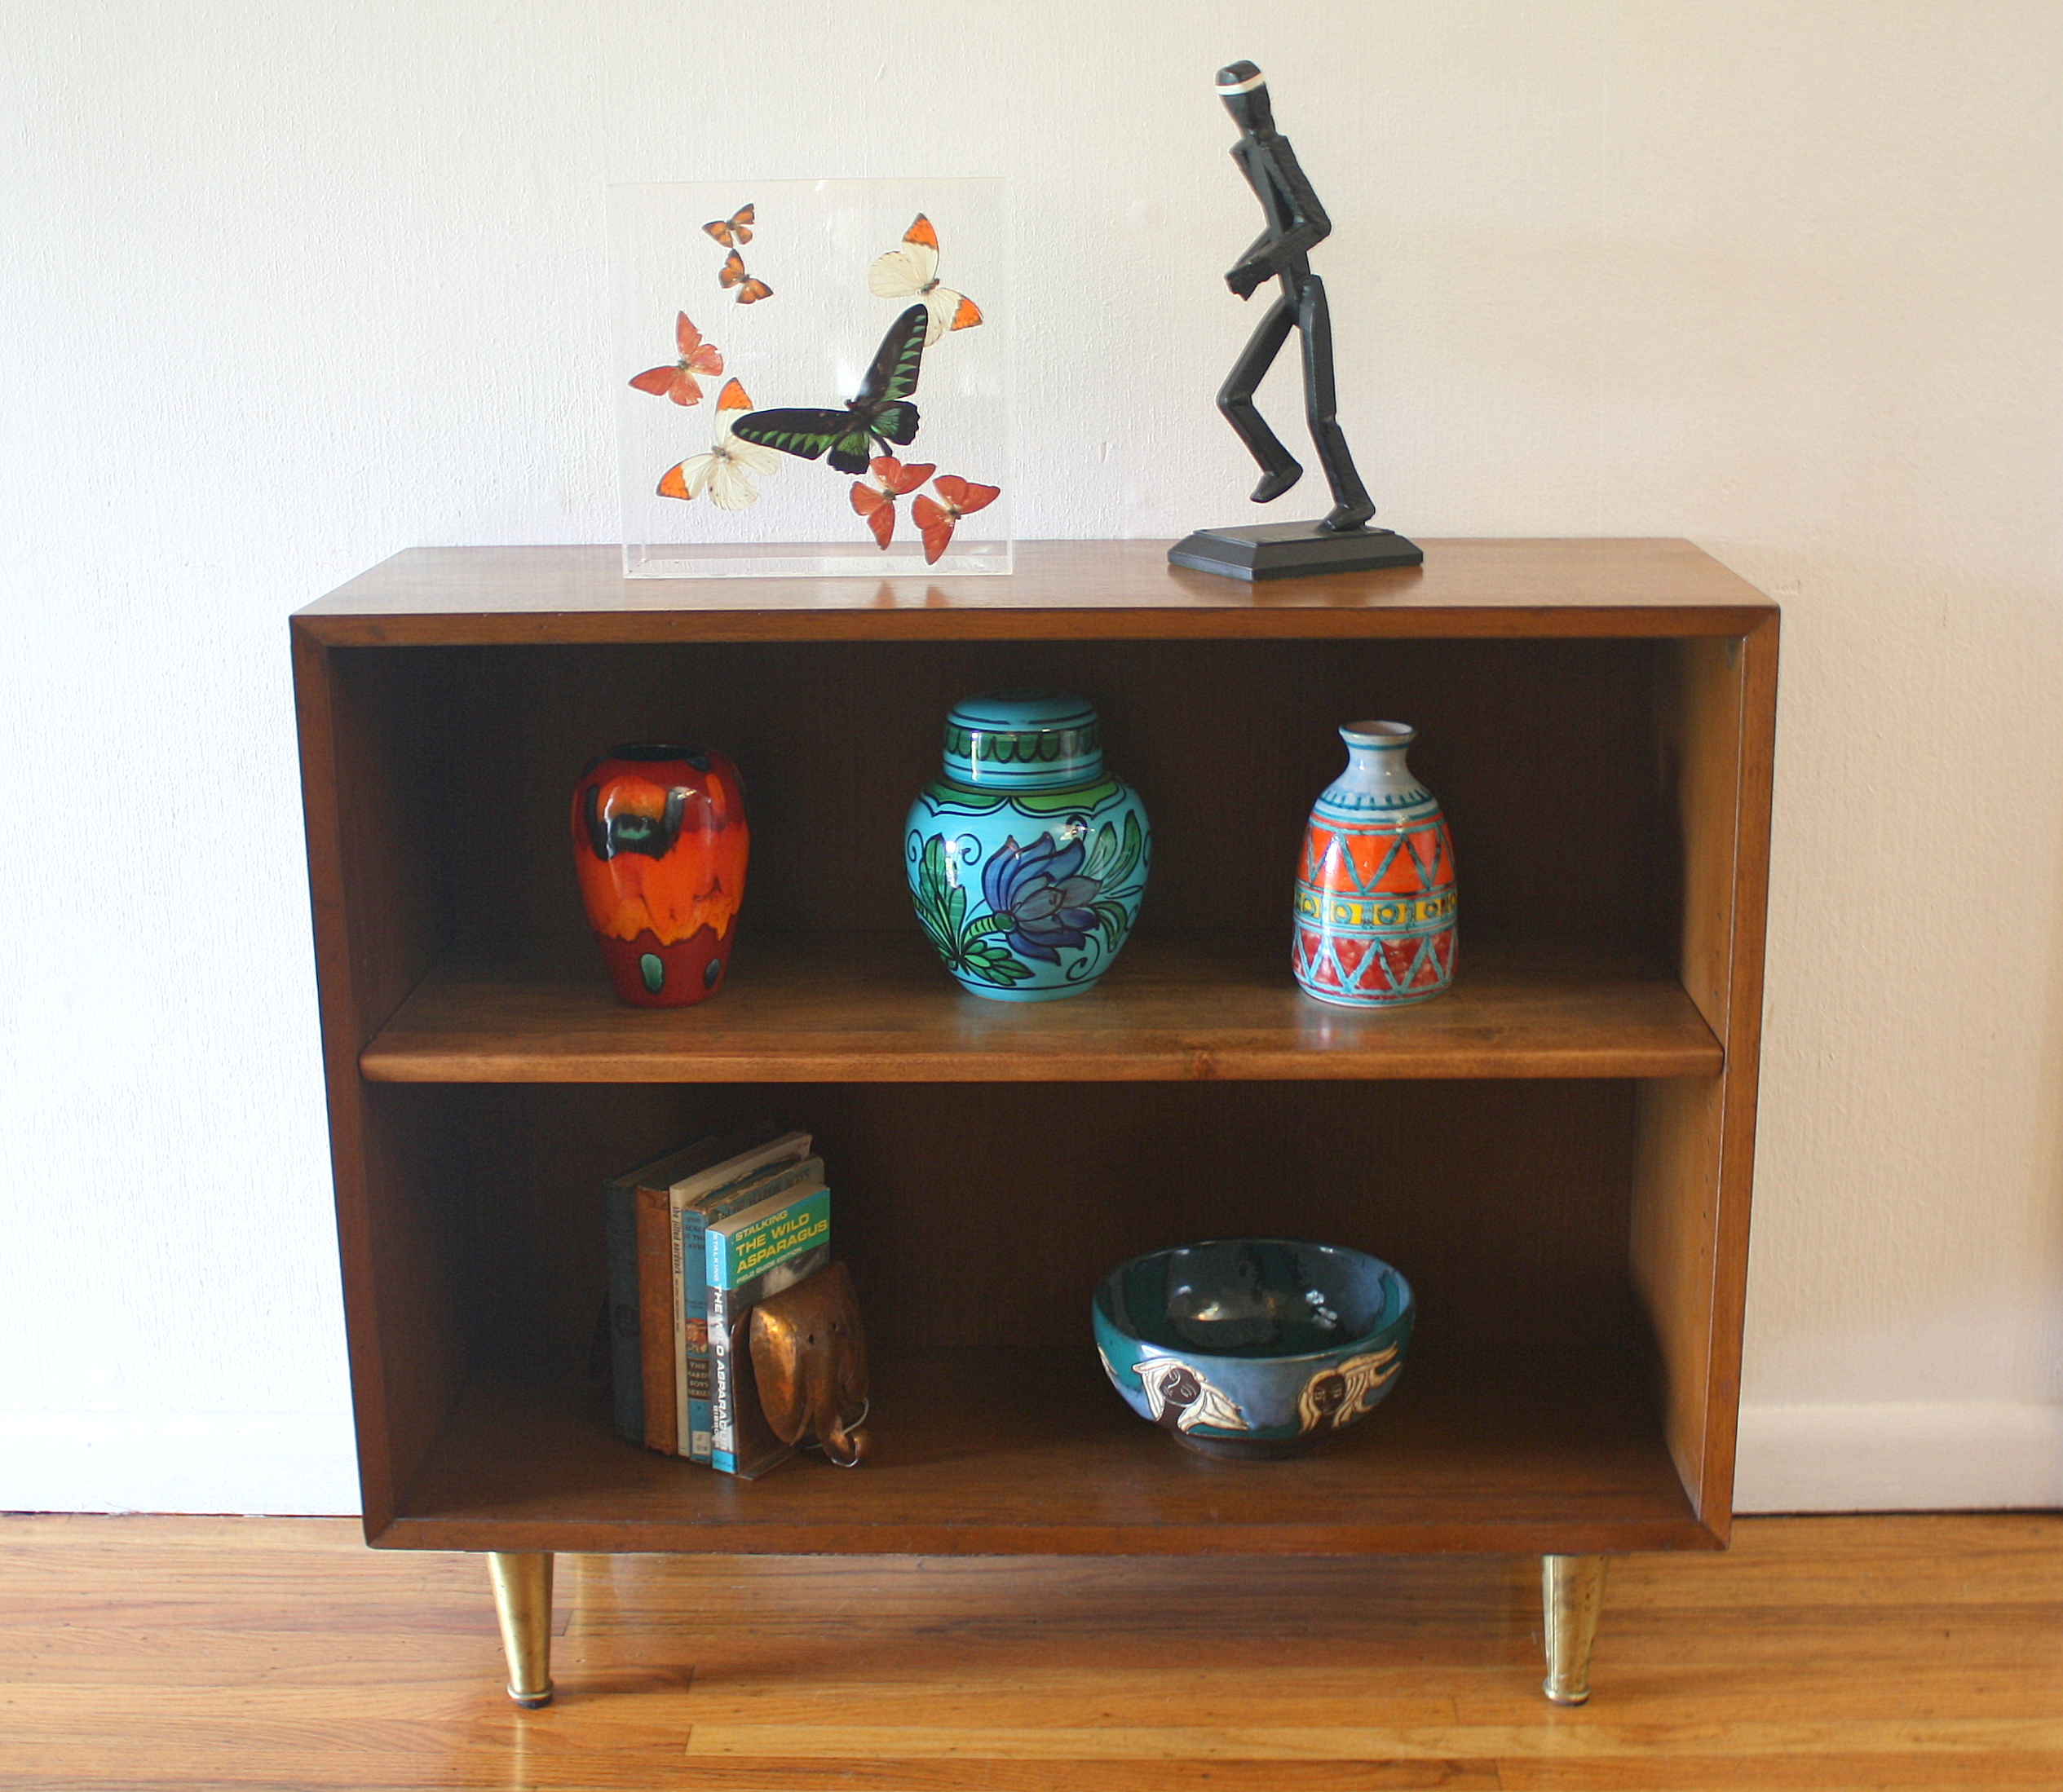 Mcm bookshelf with brass legs 3.JPG